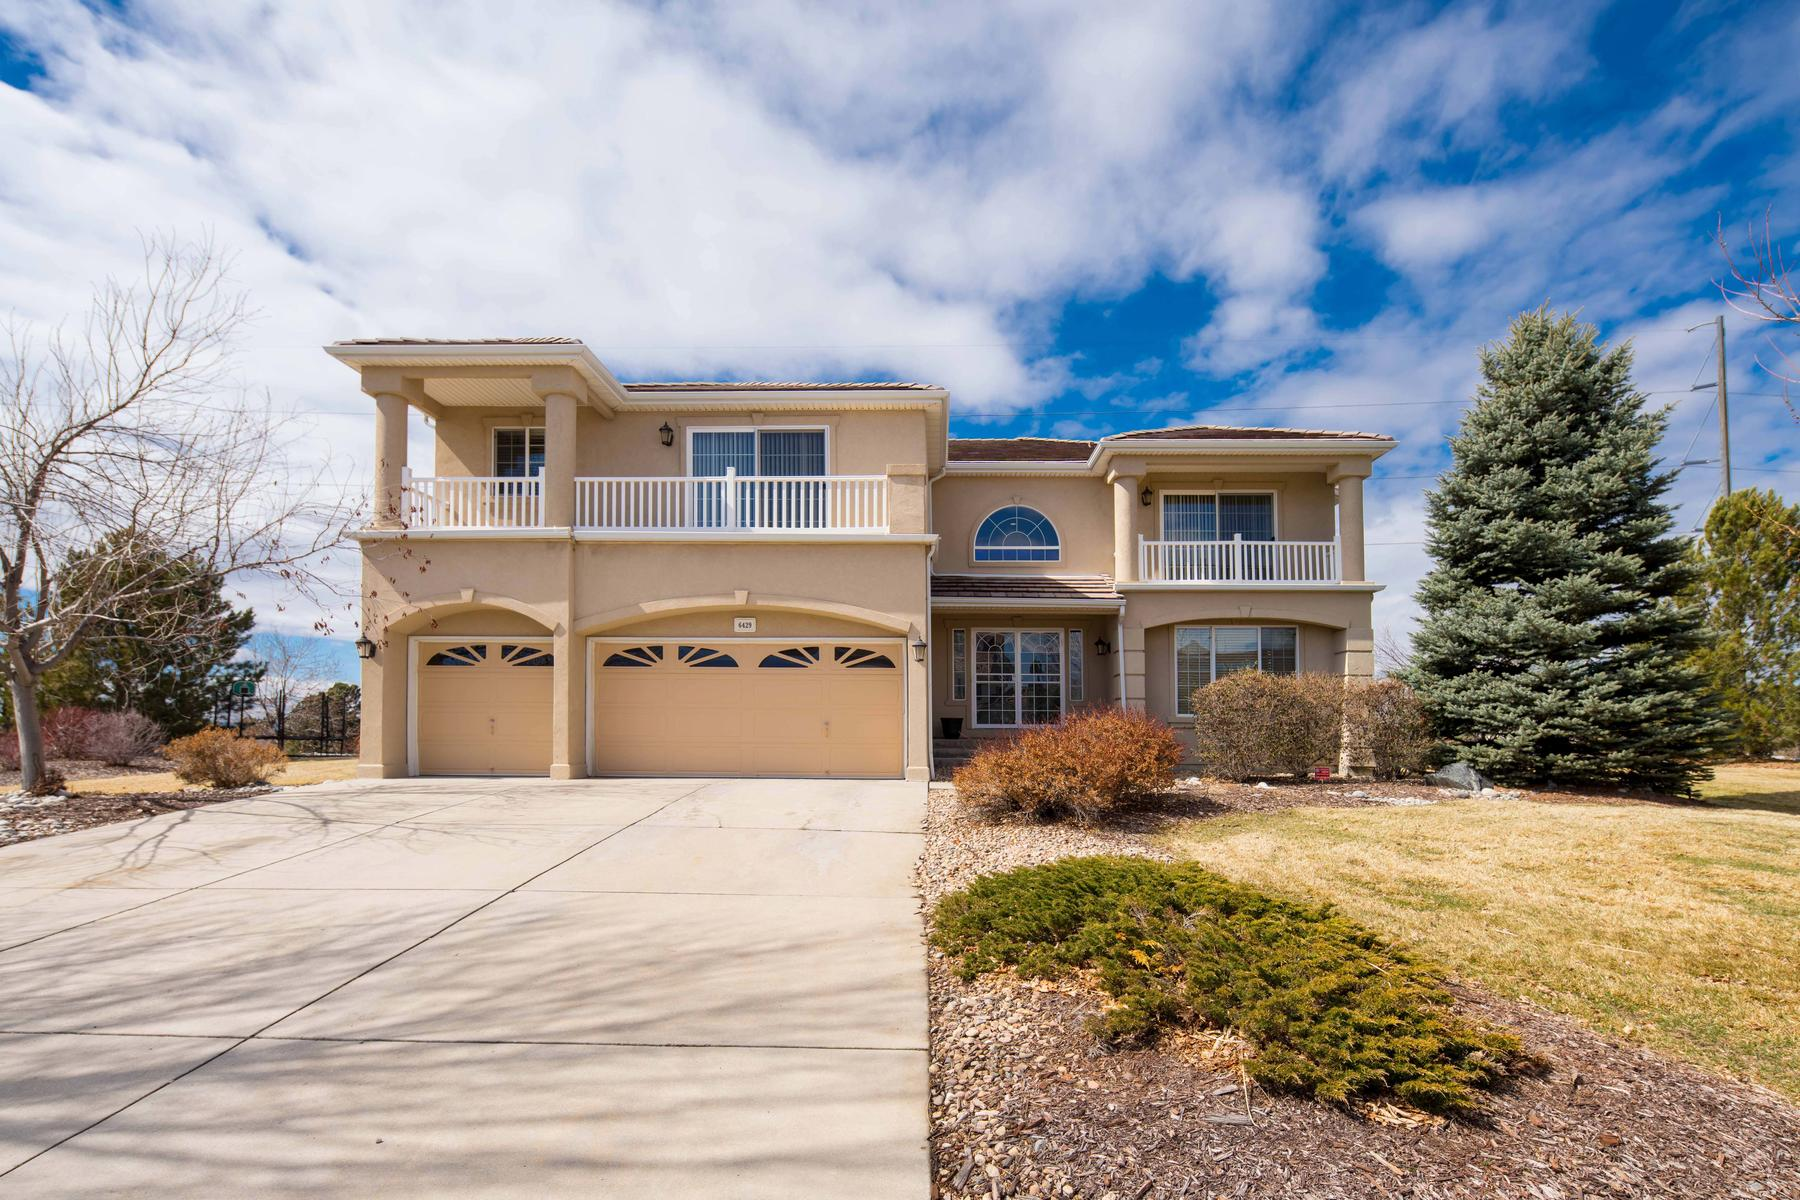 Single Family Homes のために 売買 アット Pride of ownership is obvious in this immaculate home situated on a 1-acre 6429 S Ouray Way, Aurora, コロラド 80016 アメリカ